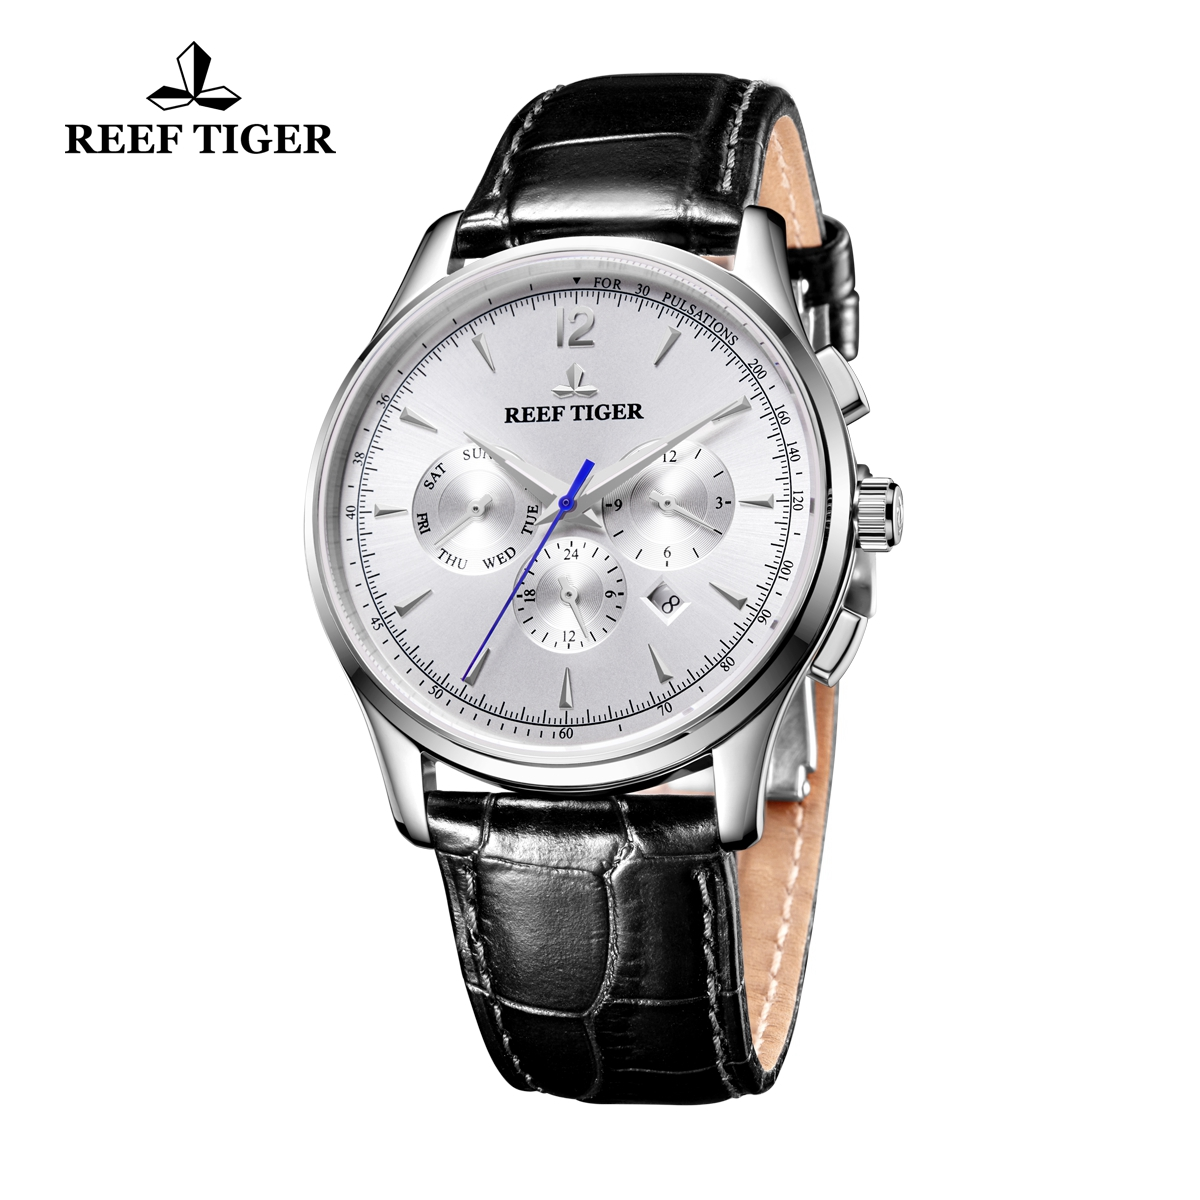 Reef Tiger Seattle Museum Dress Automatic Watch Steel White Dial Black Leather Strap RGA1654-YWB